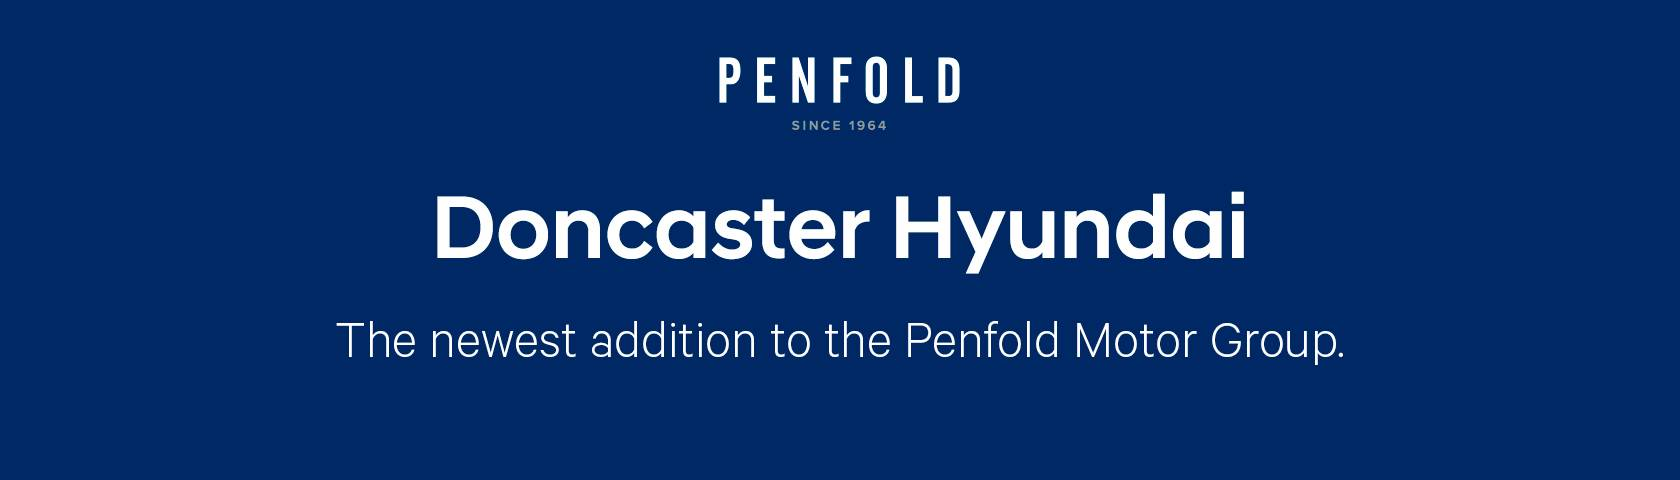 Doncaster Hyundai - The newest addition to the Penfold Motor Group